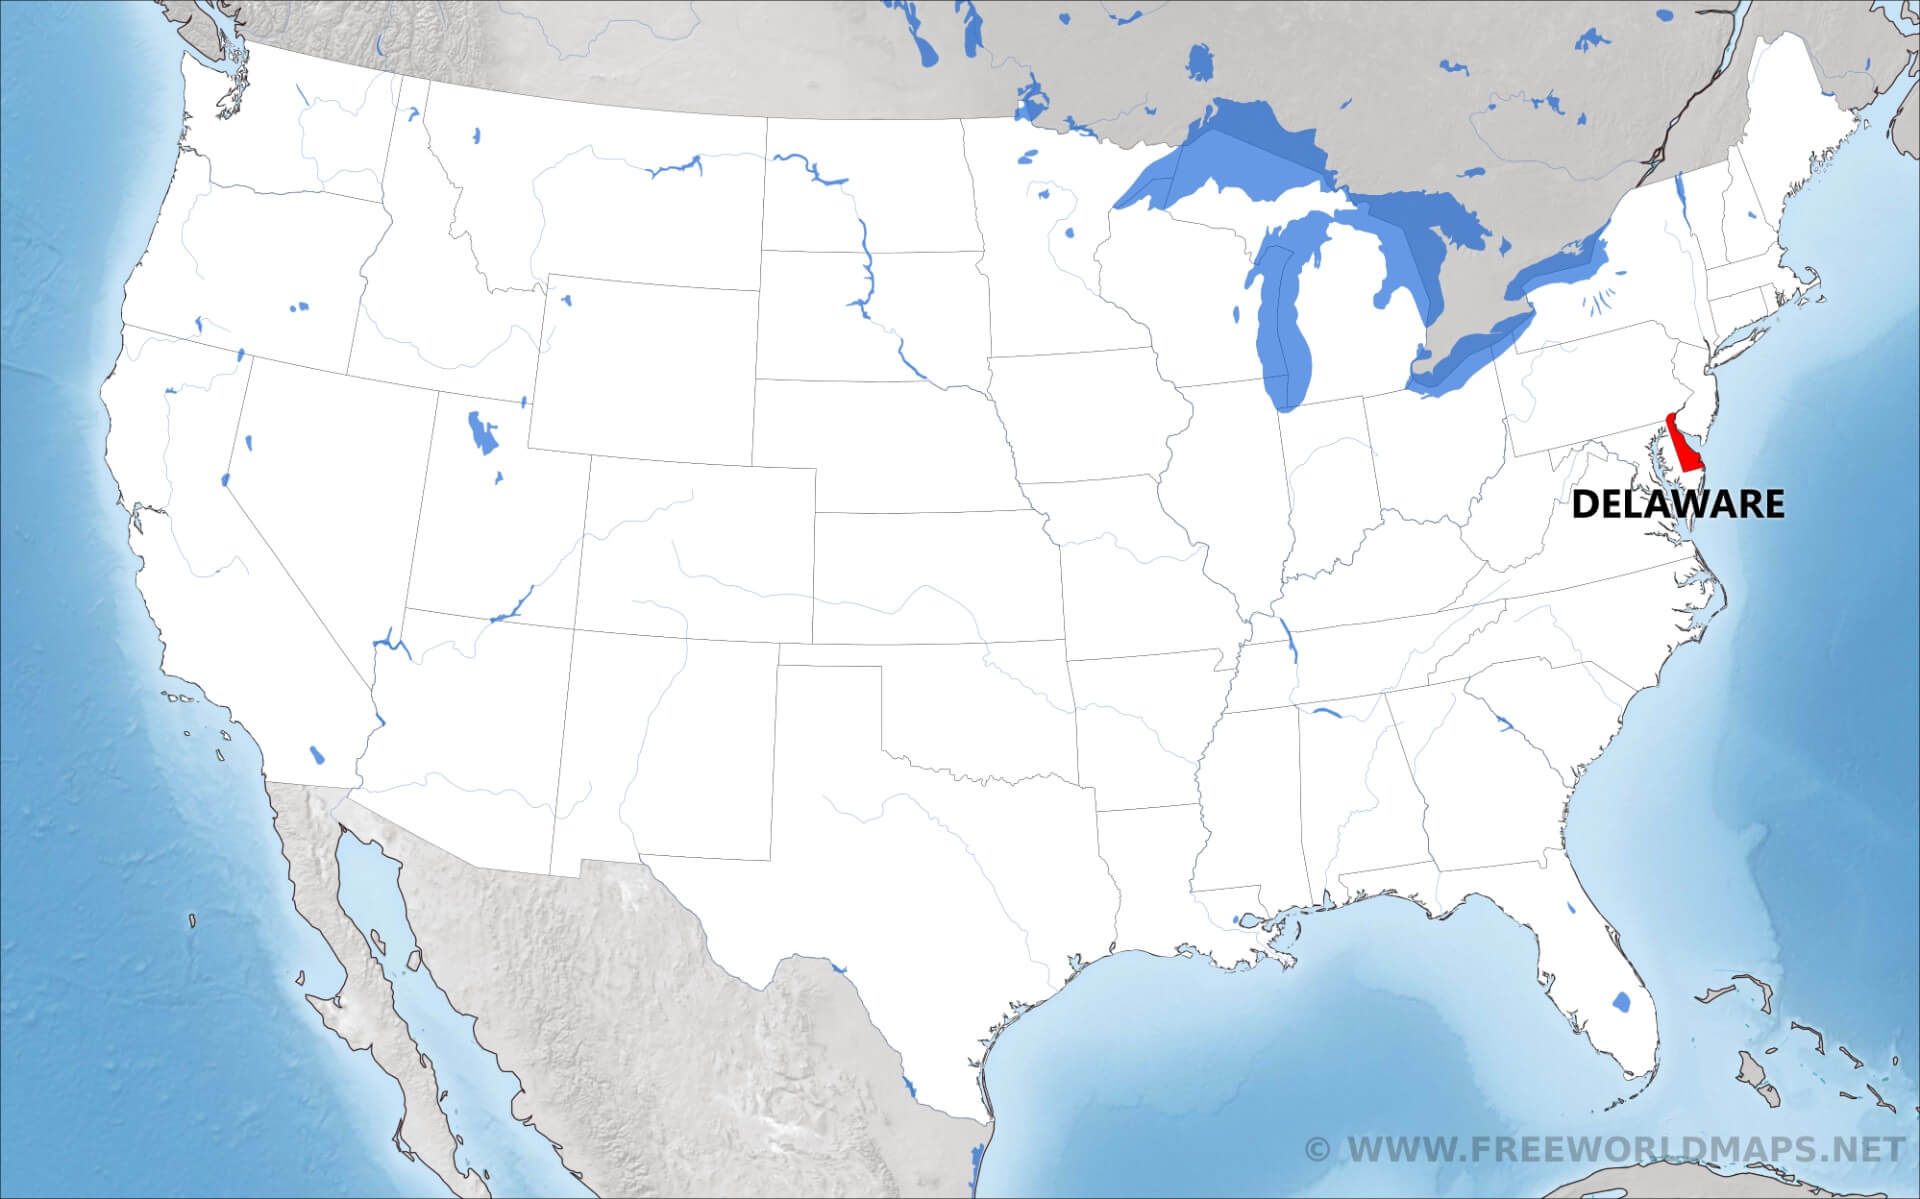 Where is Delaware located on the map